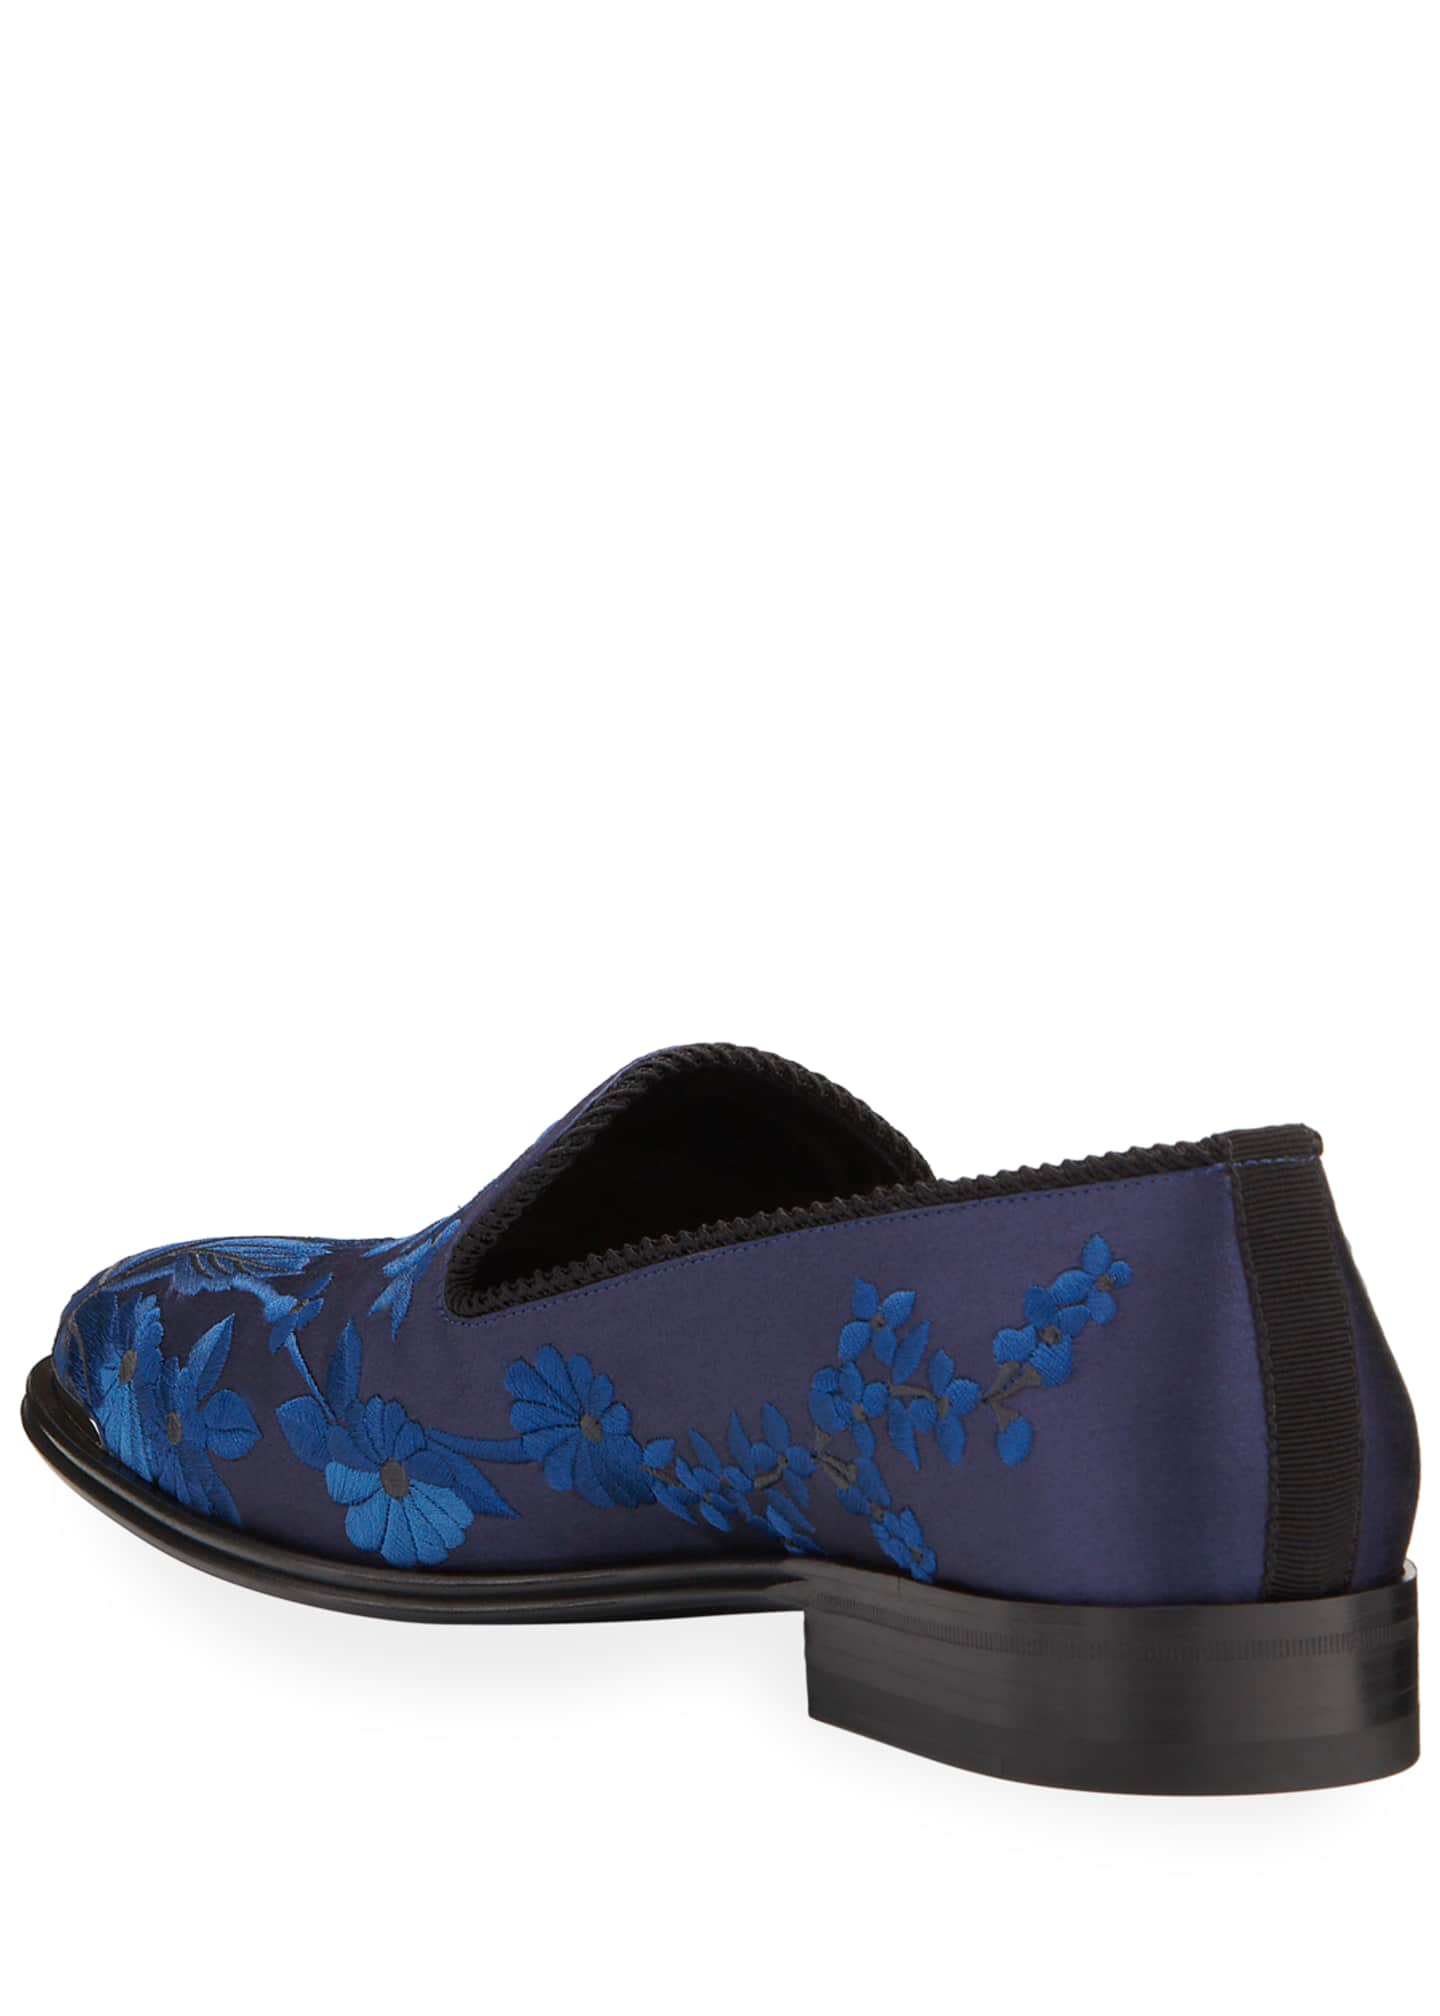 Image 4 of 4: Men's Embroidered Satin Formal Slip-On Loafers